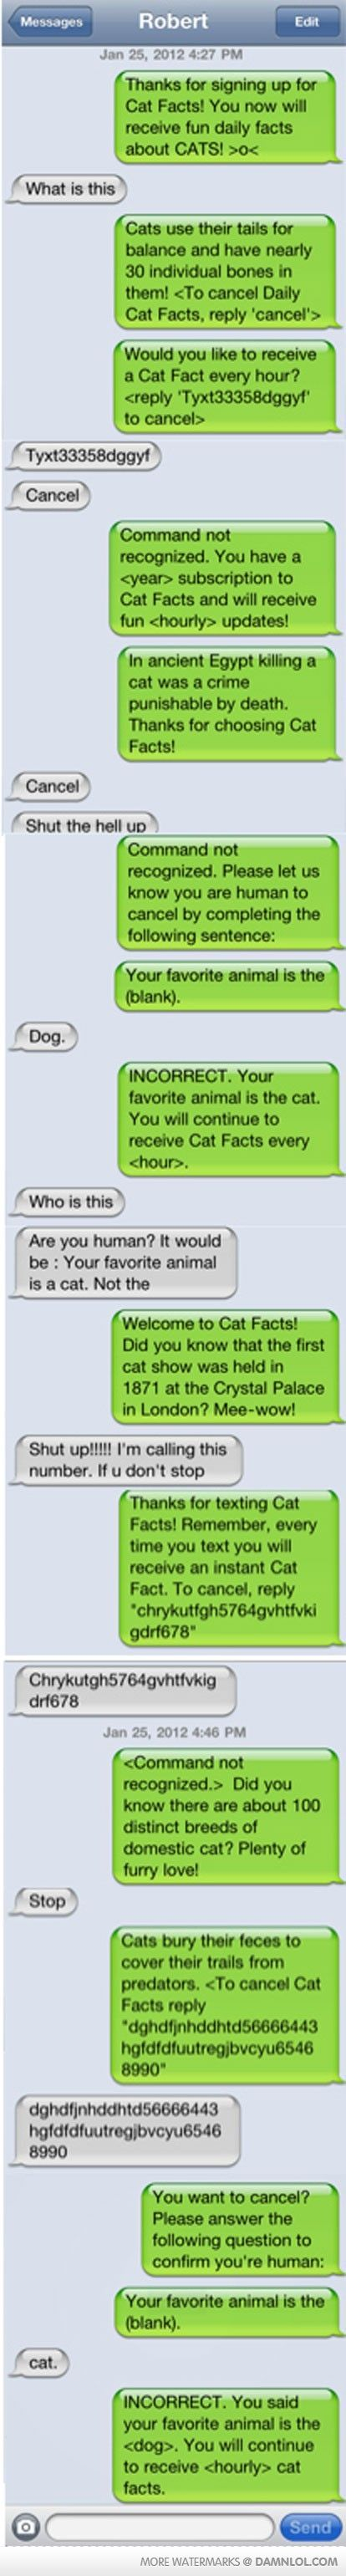 Cat Facts haha